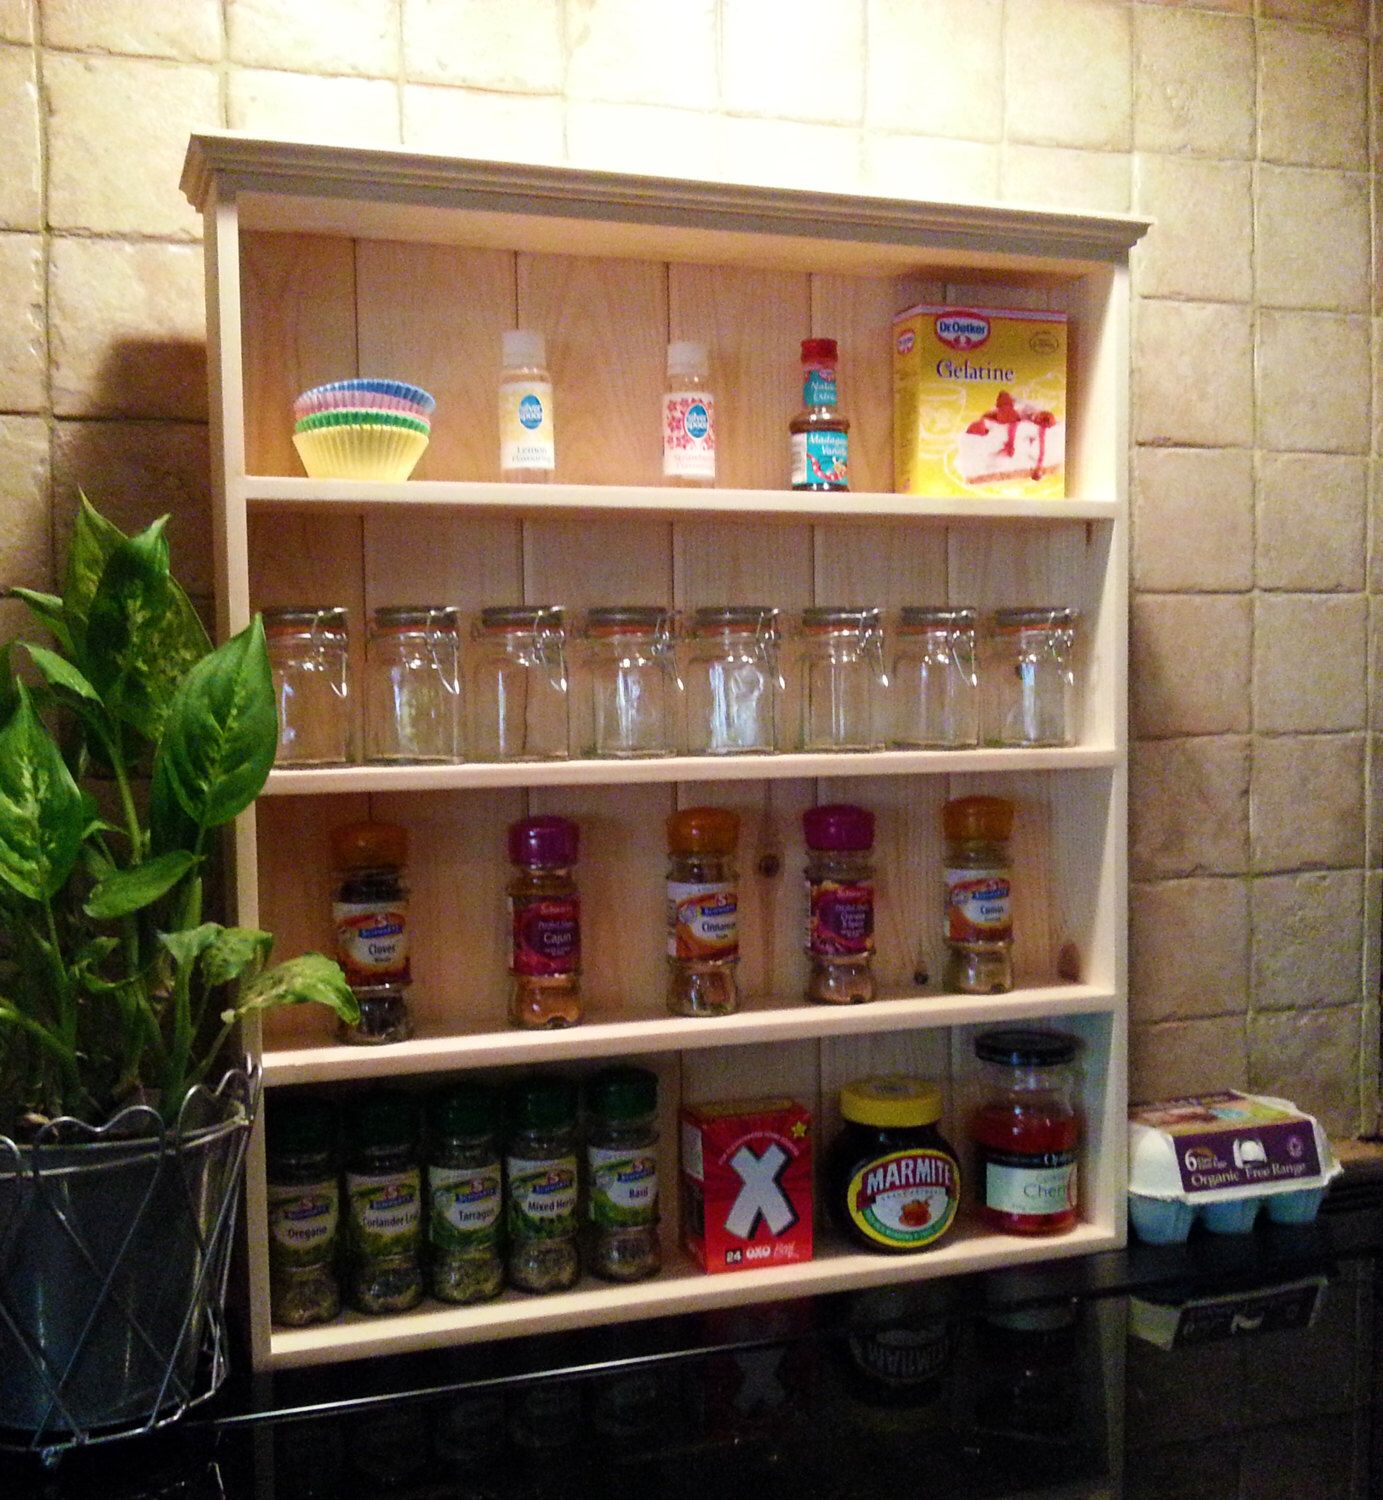 Woodworking Plans For Kitchen Spice Rack: Solid Wood Wall Display Shelves Spice Rack Kitchen Storage